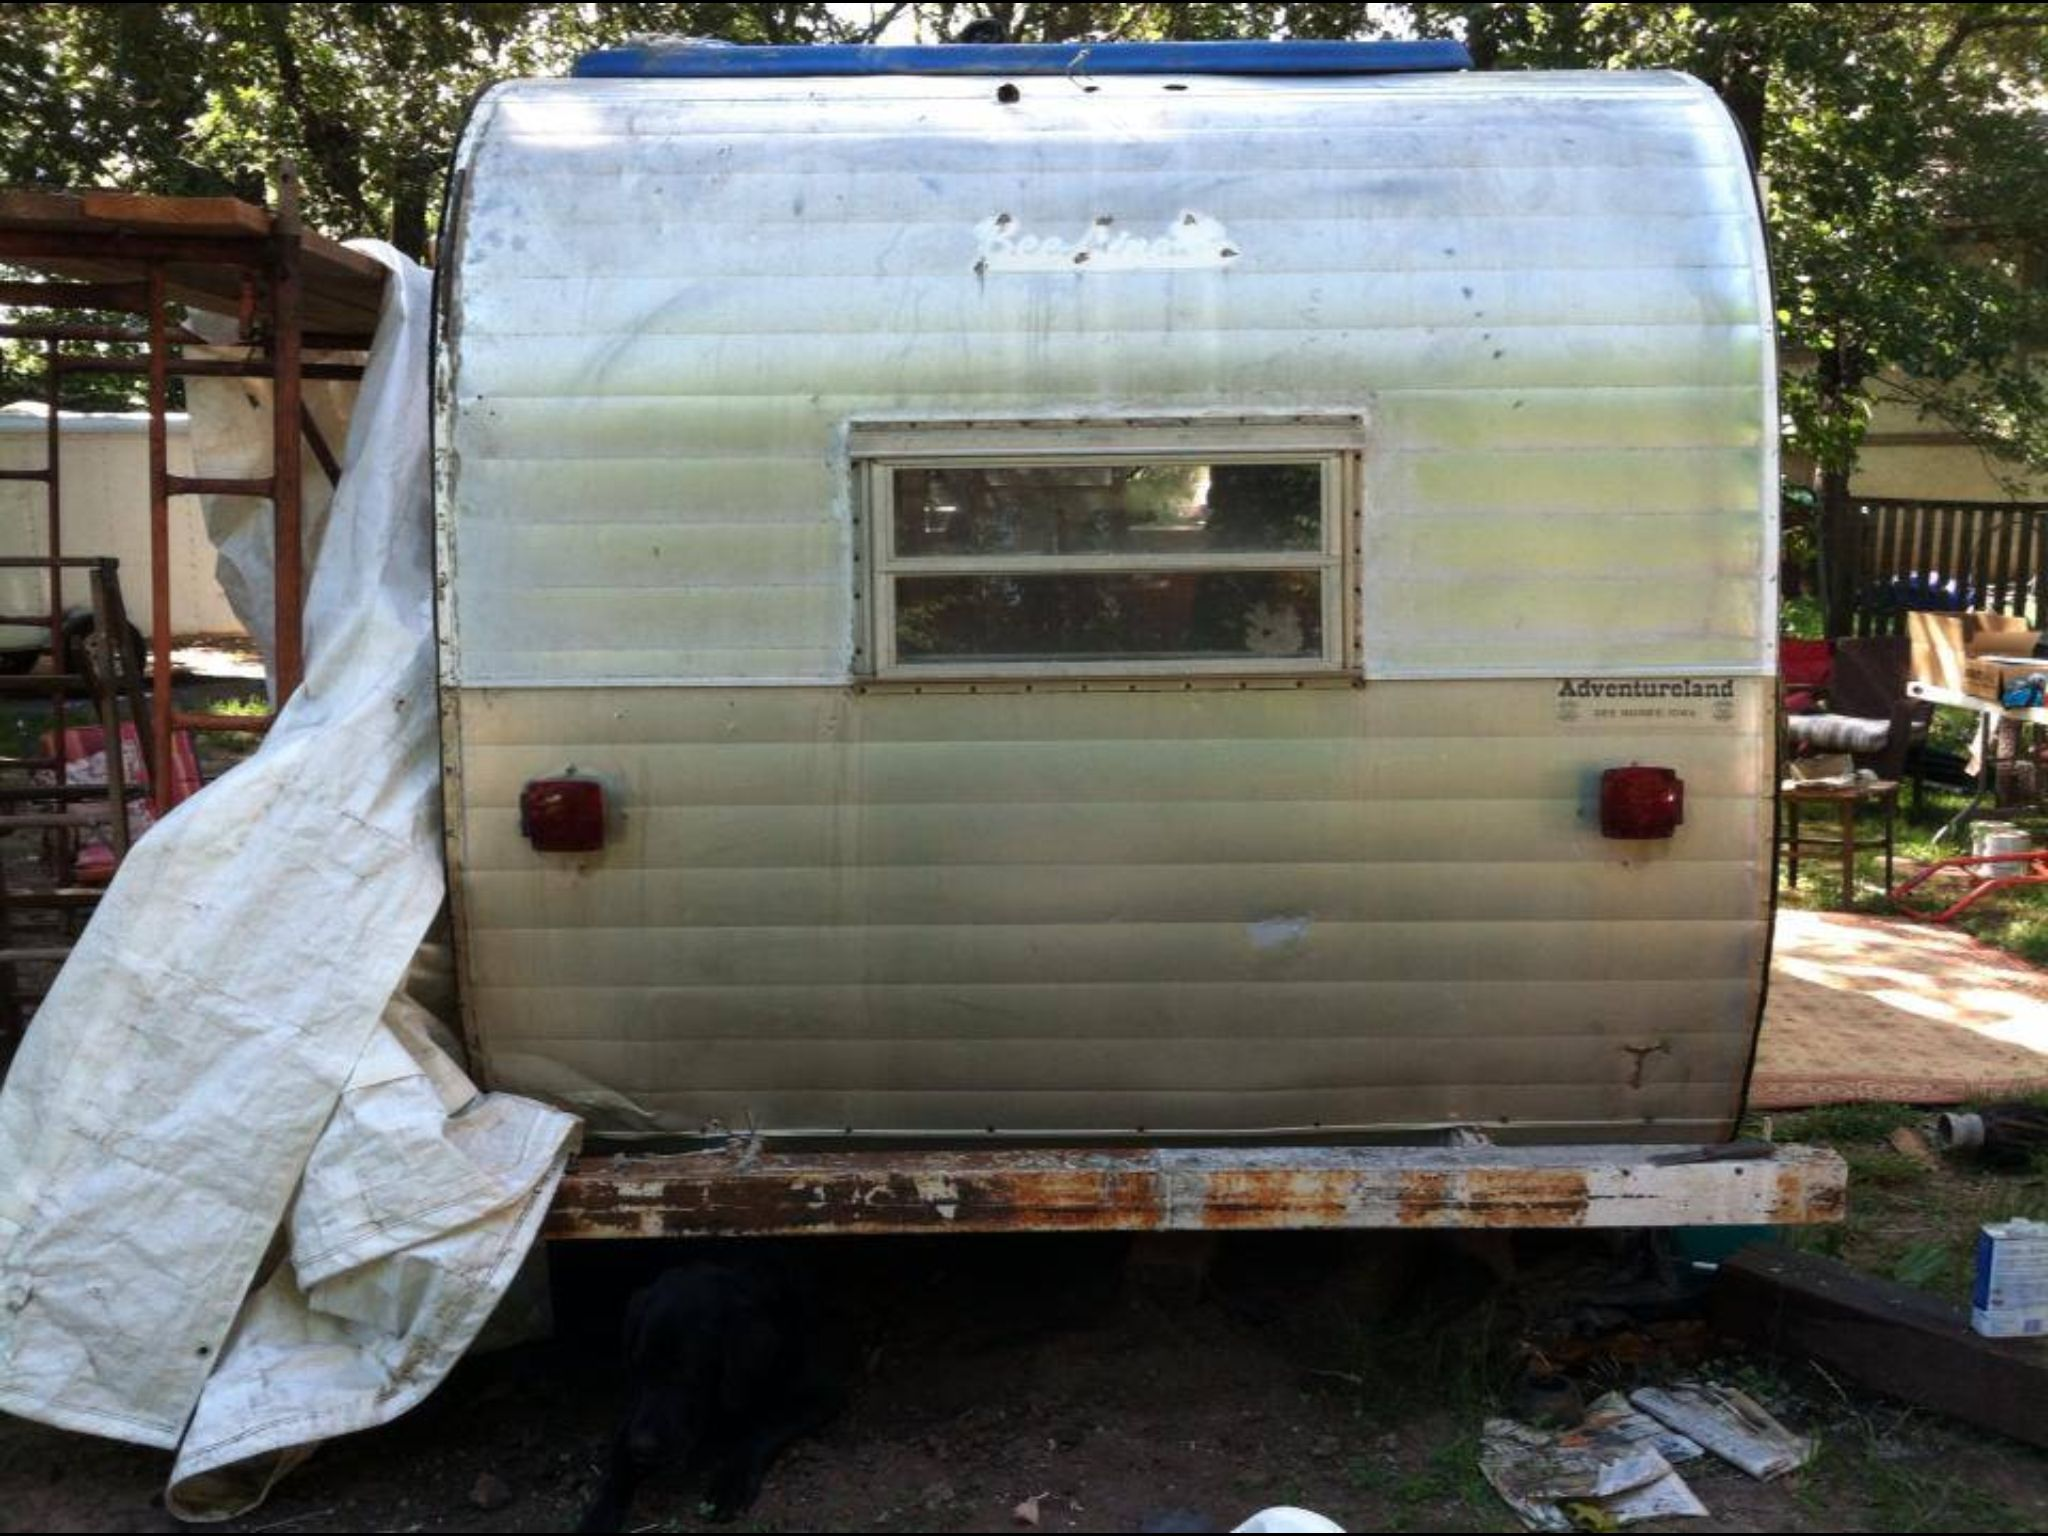 Before rear gypsy rosecamper